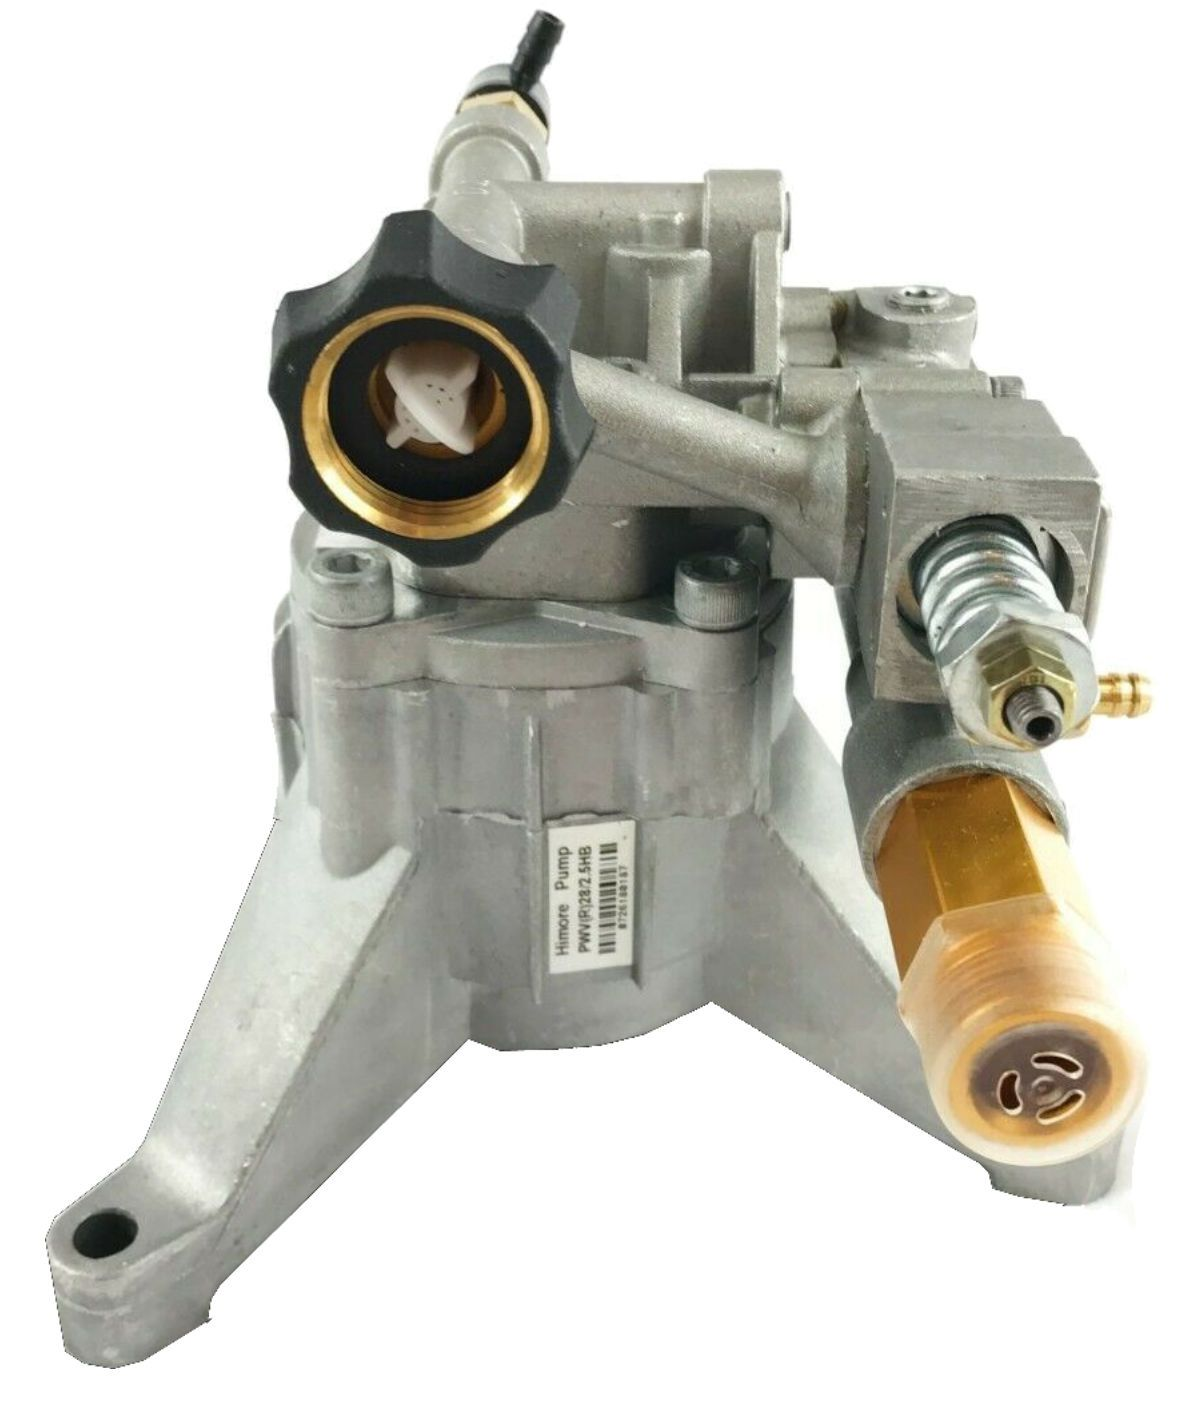 2700 PSI PRESSURE WASHER WATER PUMP fits Generac 580.767100 580.768010 - AE-Power